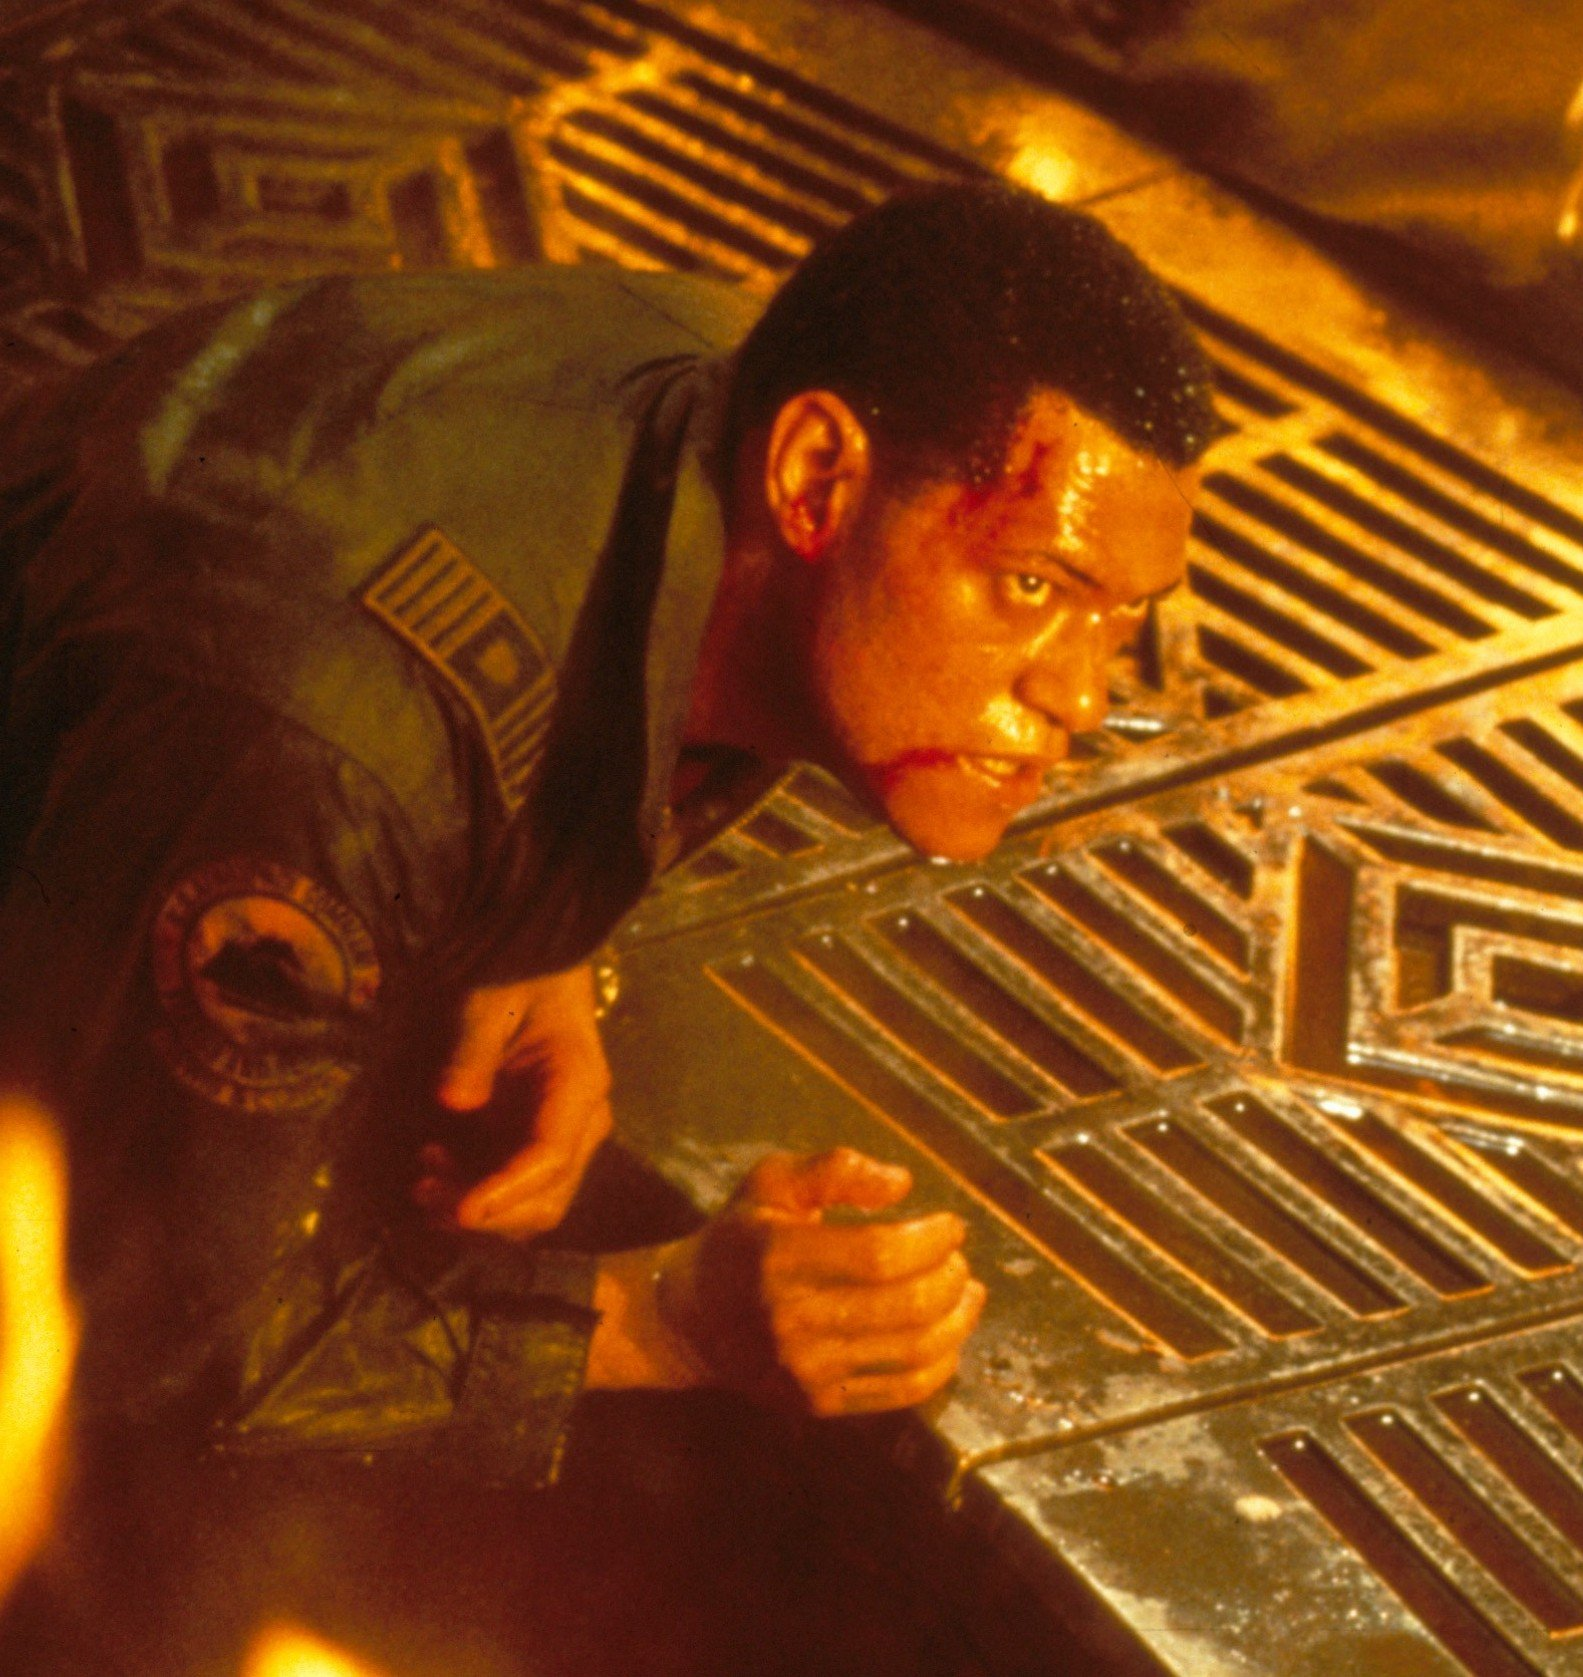 Event Horizon 12019 High Event Horizon: 20 Things You Never Knew About THE Cult Sci-Fi Horror